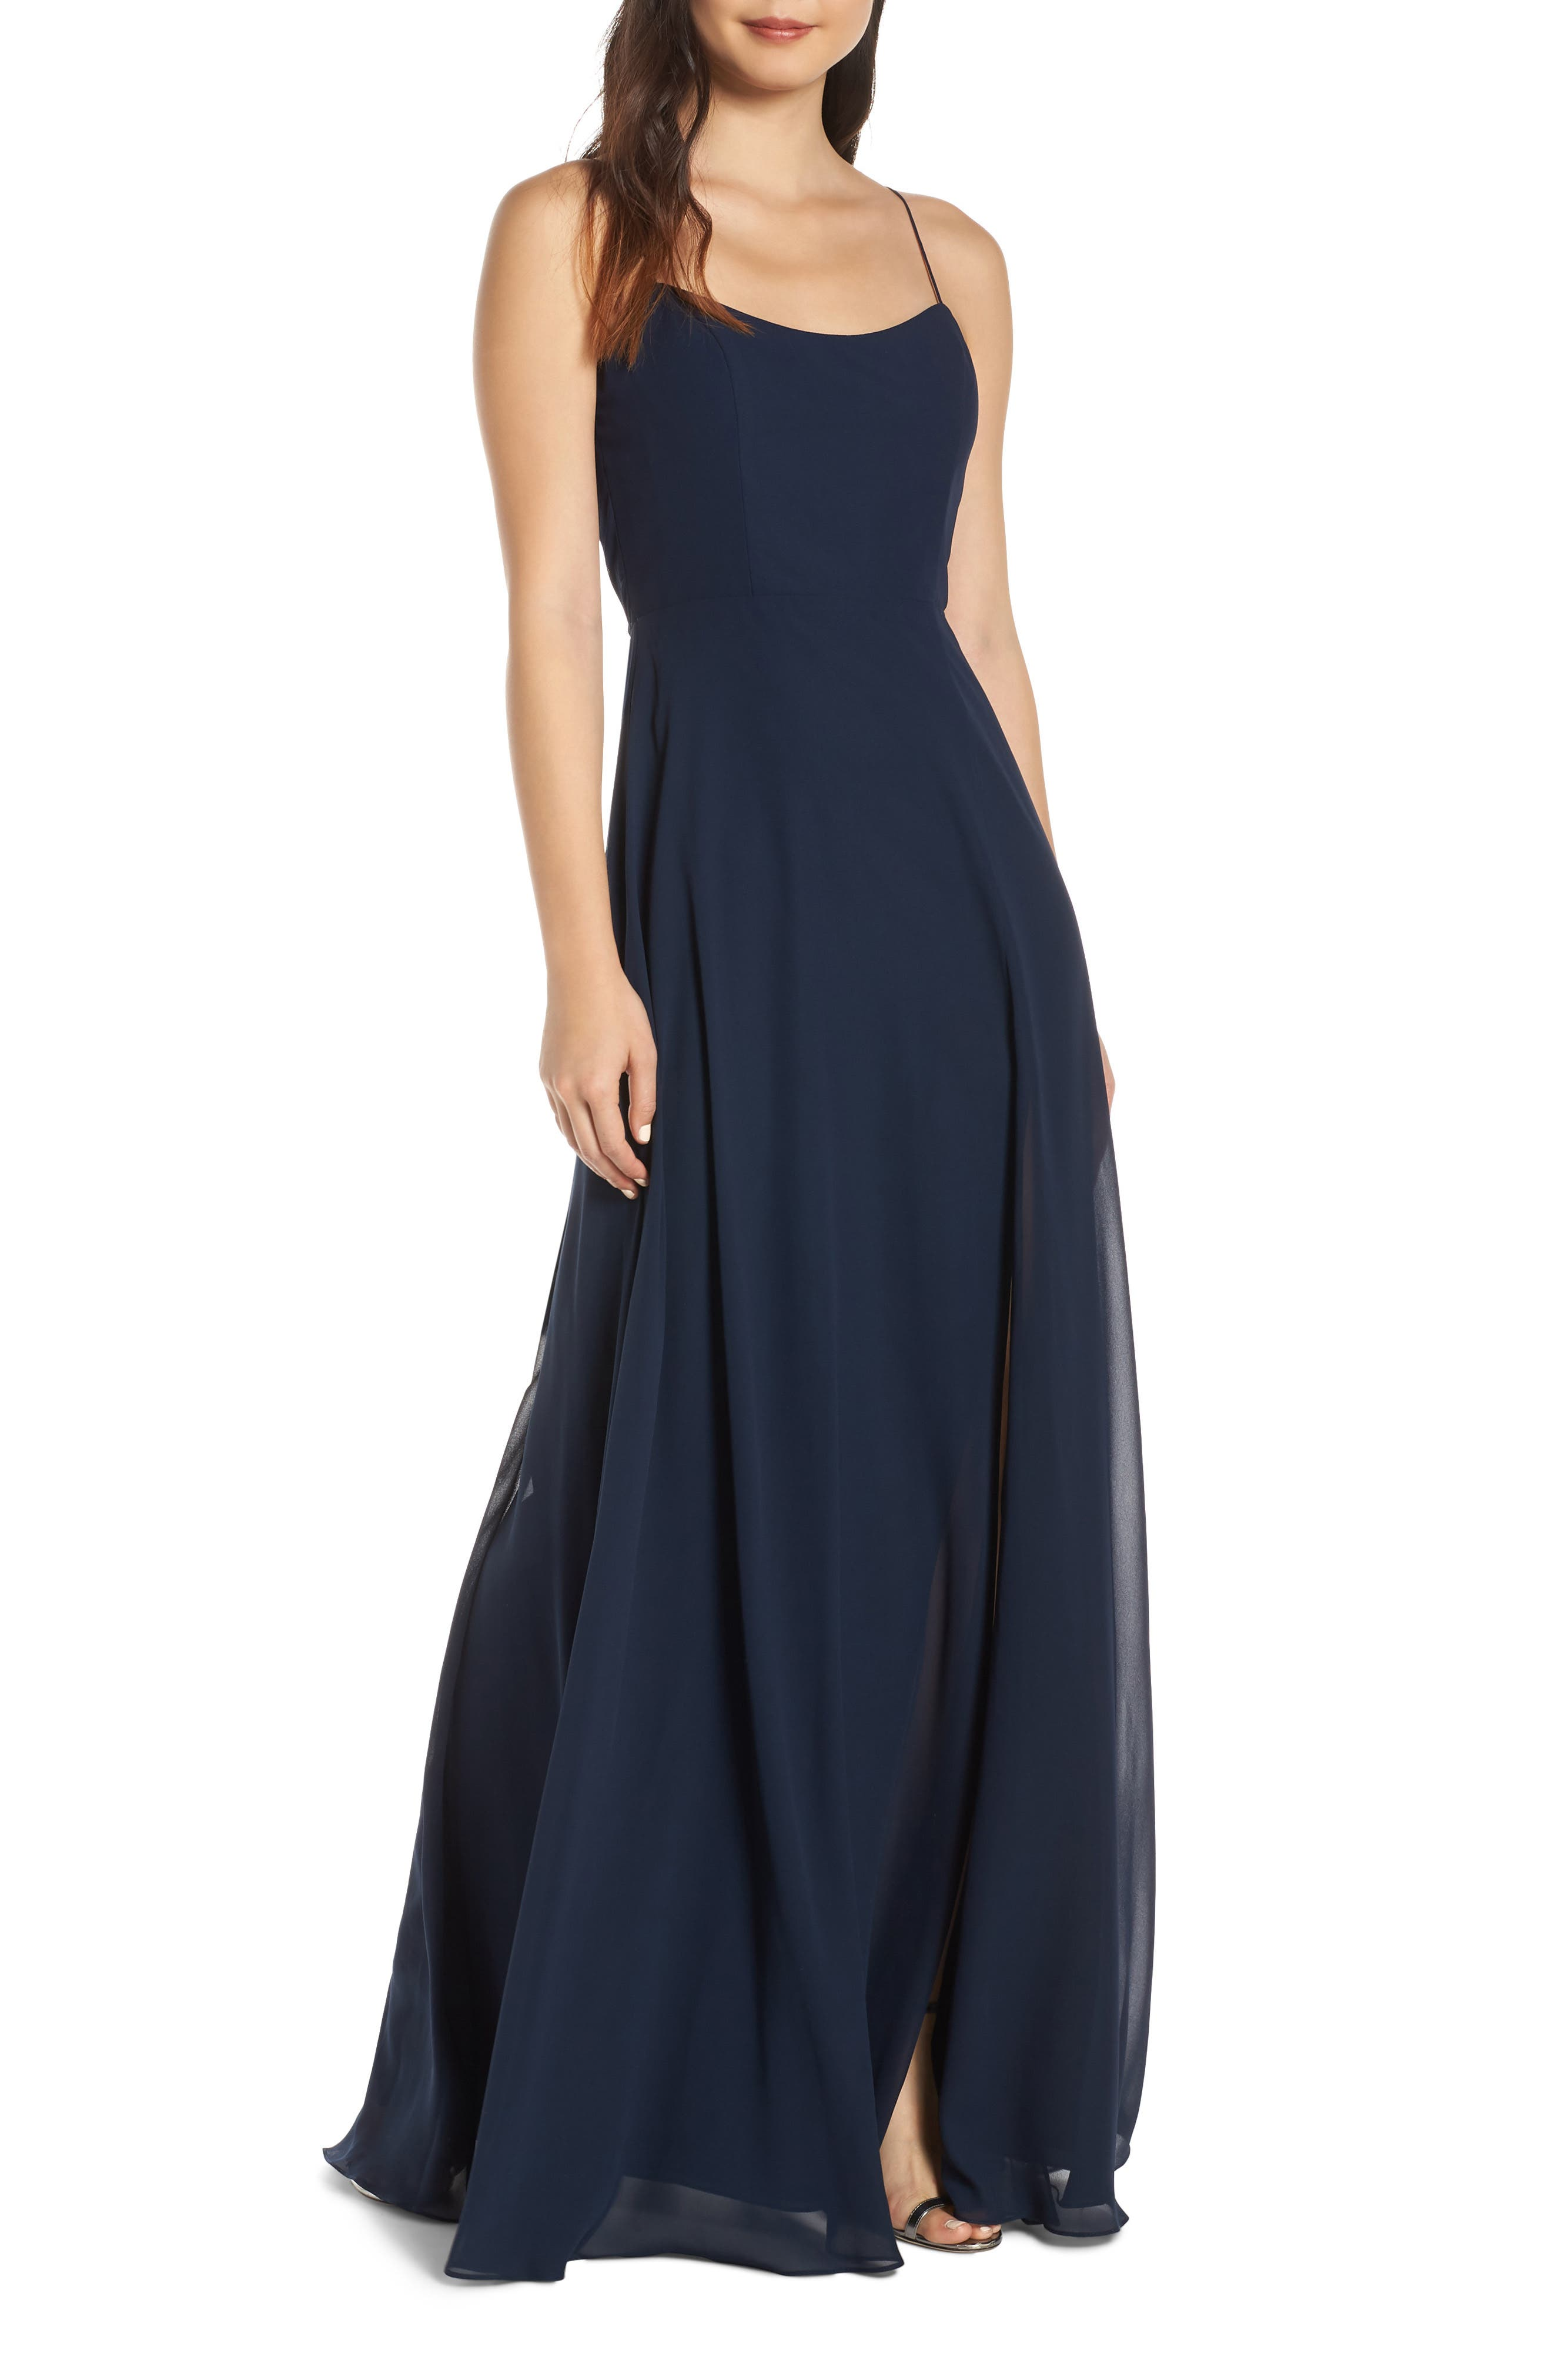 Jenny Yoo Kiara Bow Back Chiffon Evening Dress, Blue